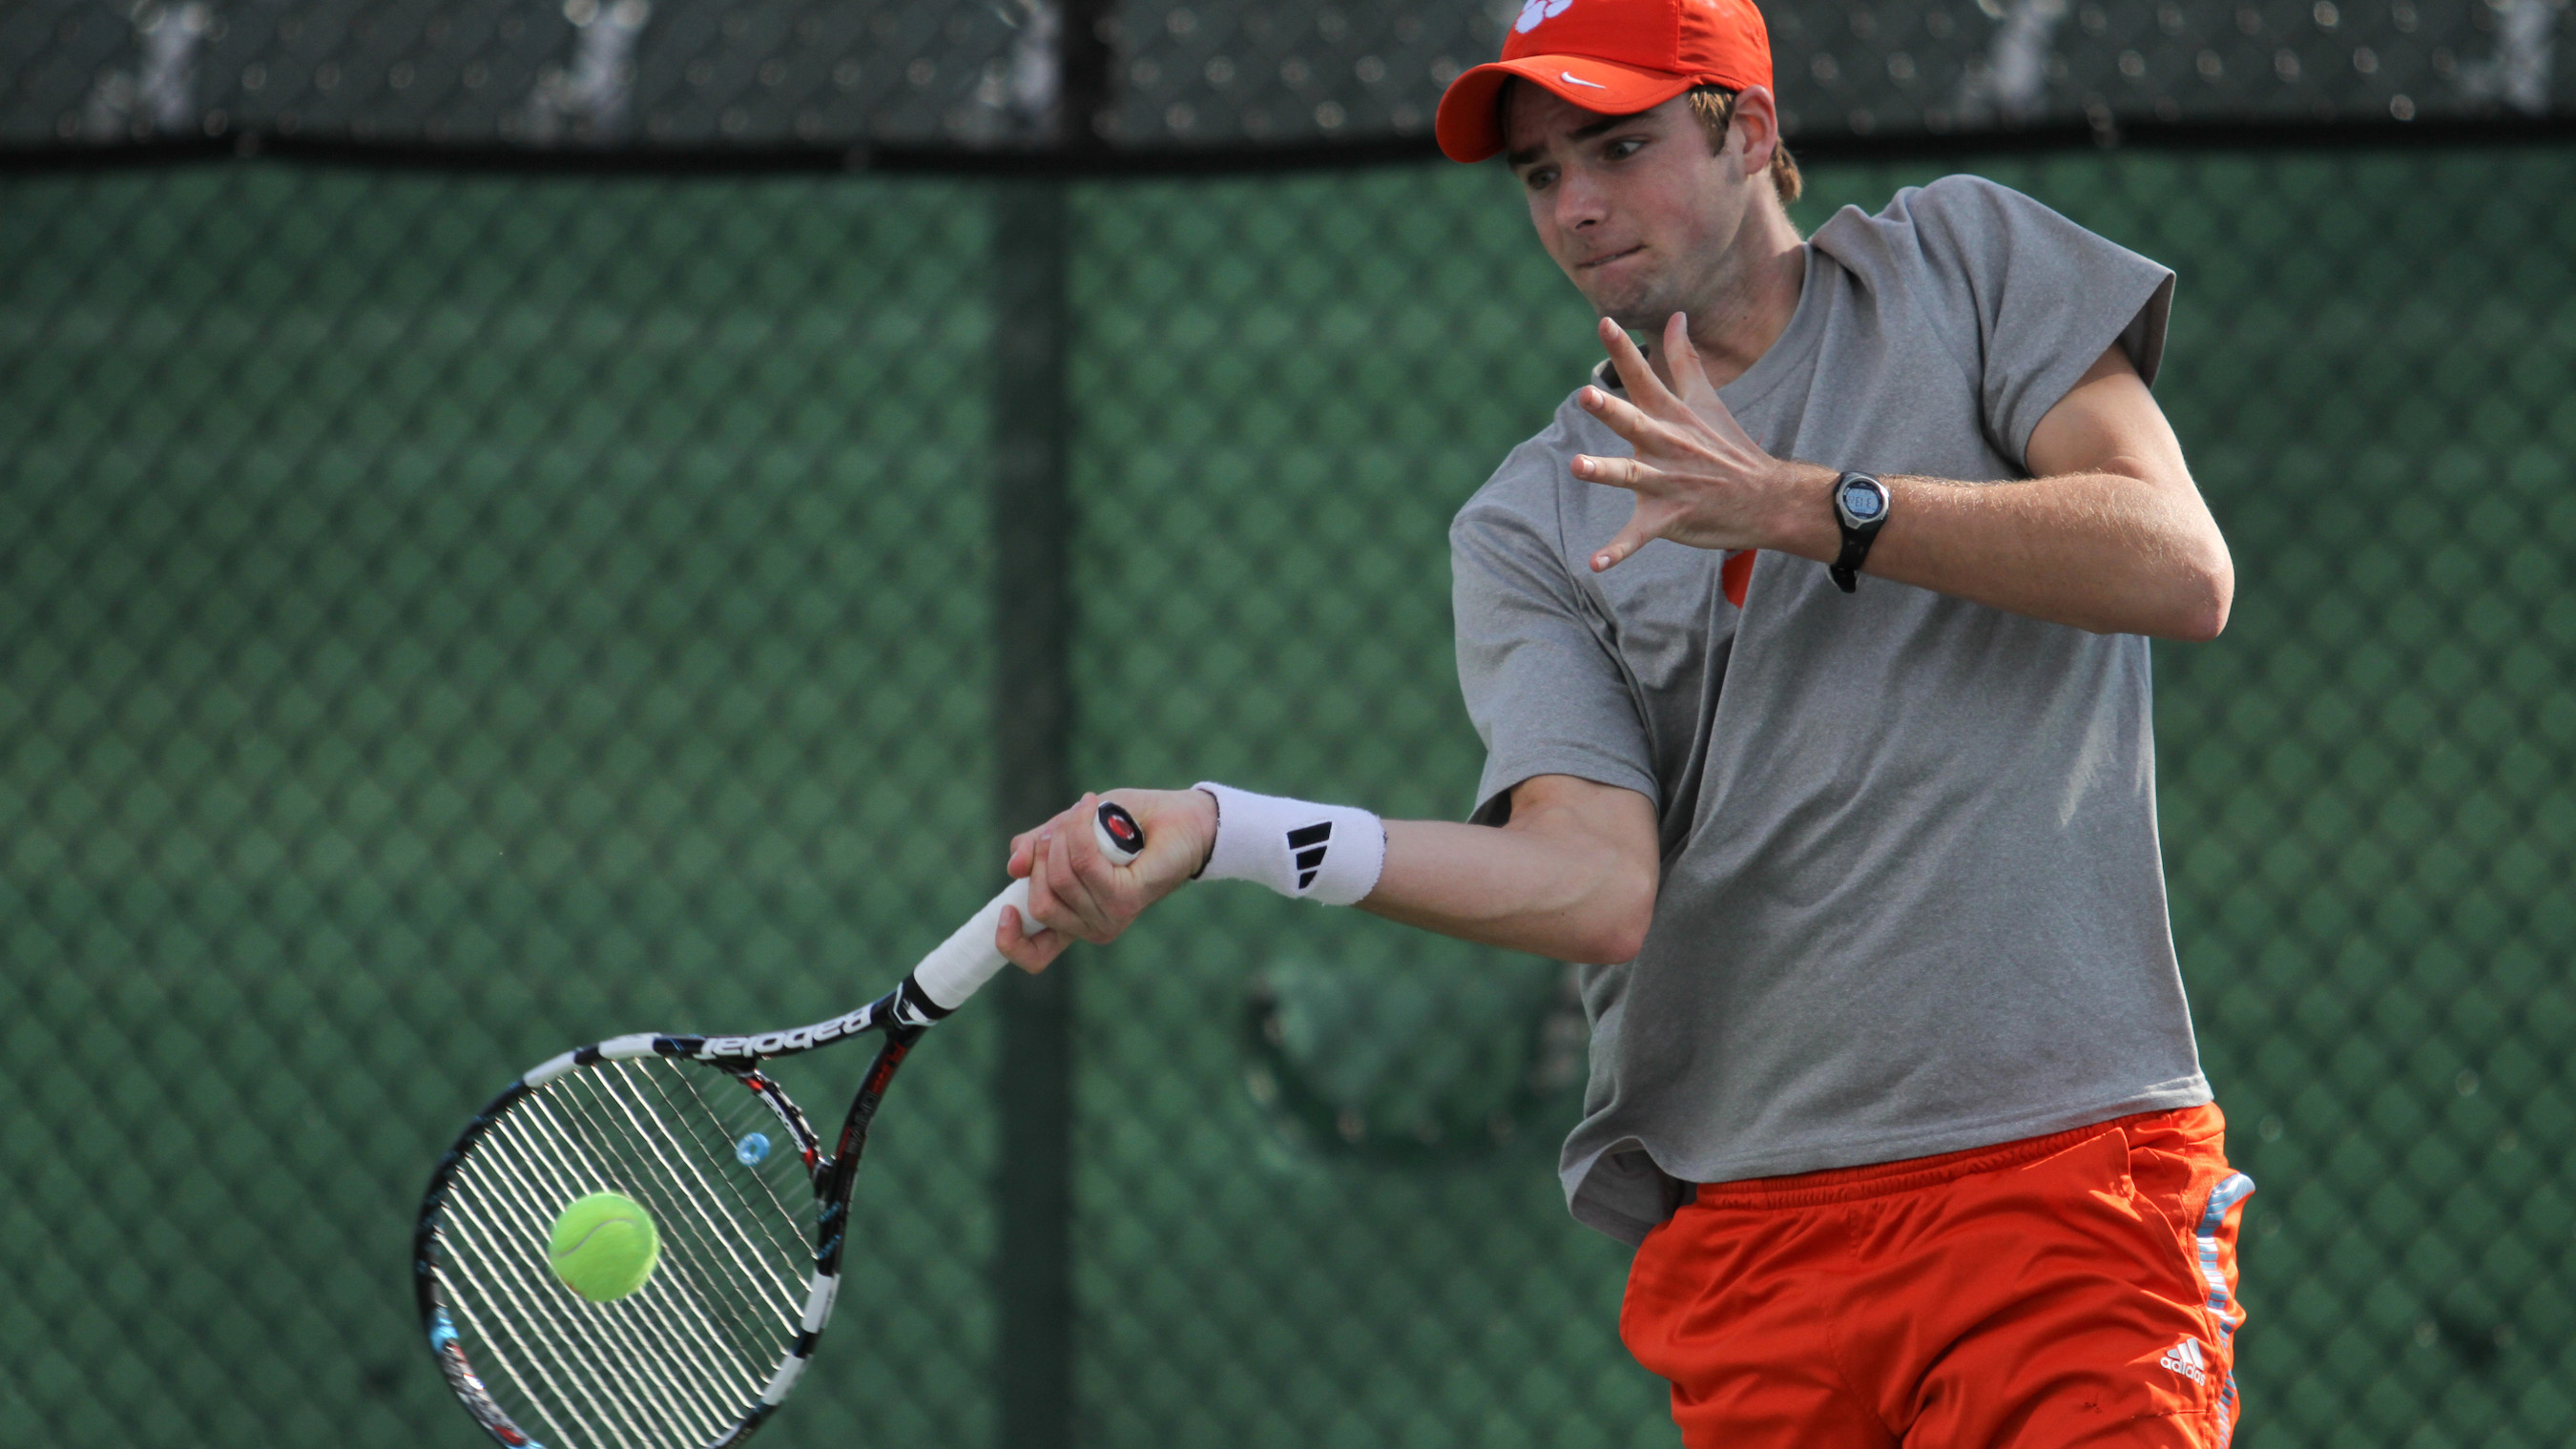 Clemson Wins 11th Match of Season with 5-2 Defeat of UNC Wilmington